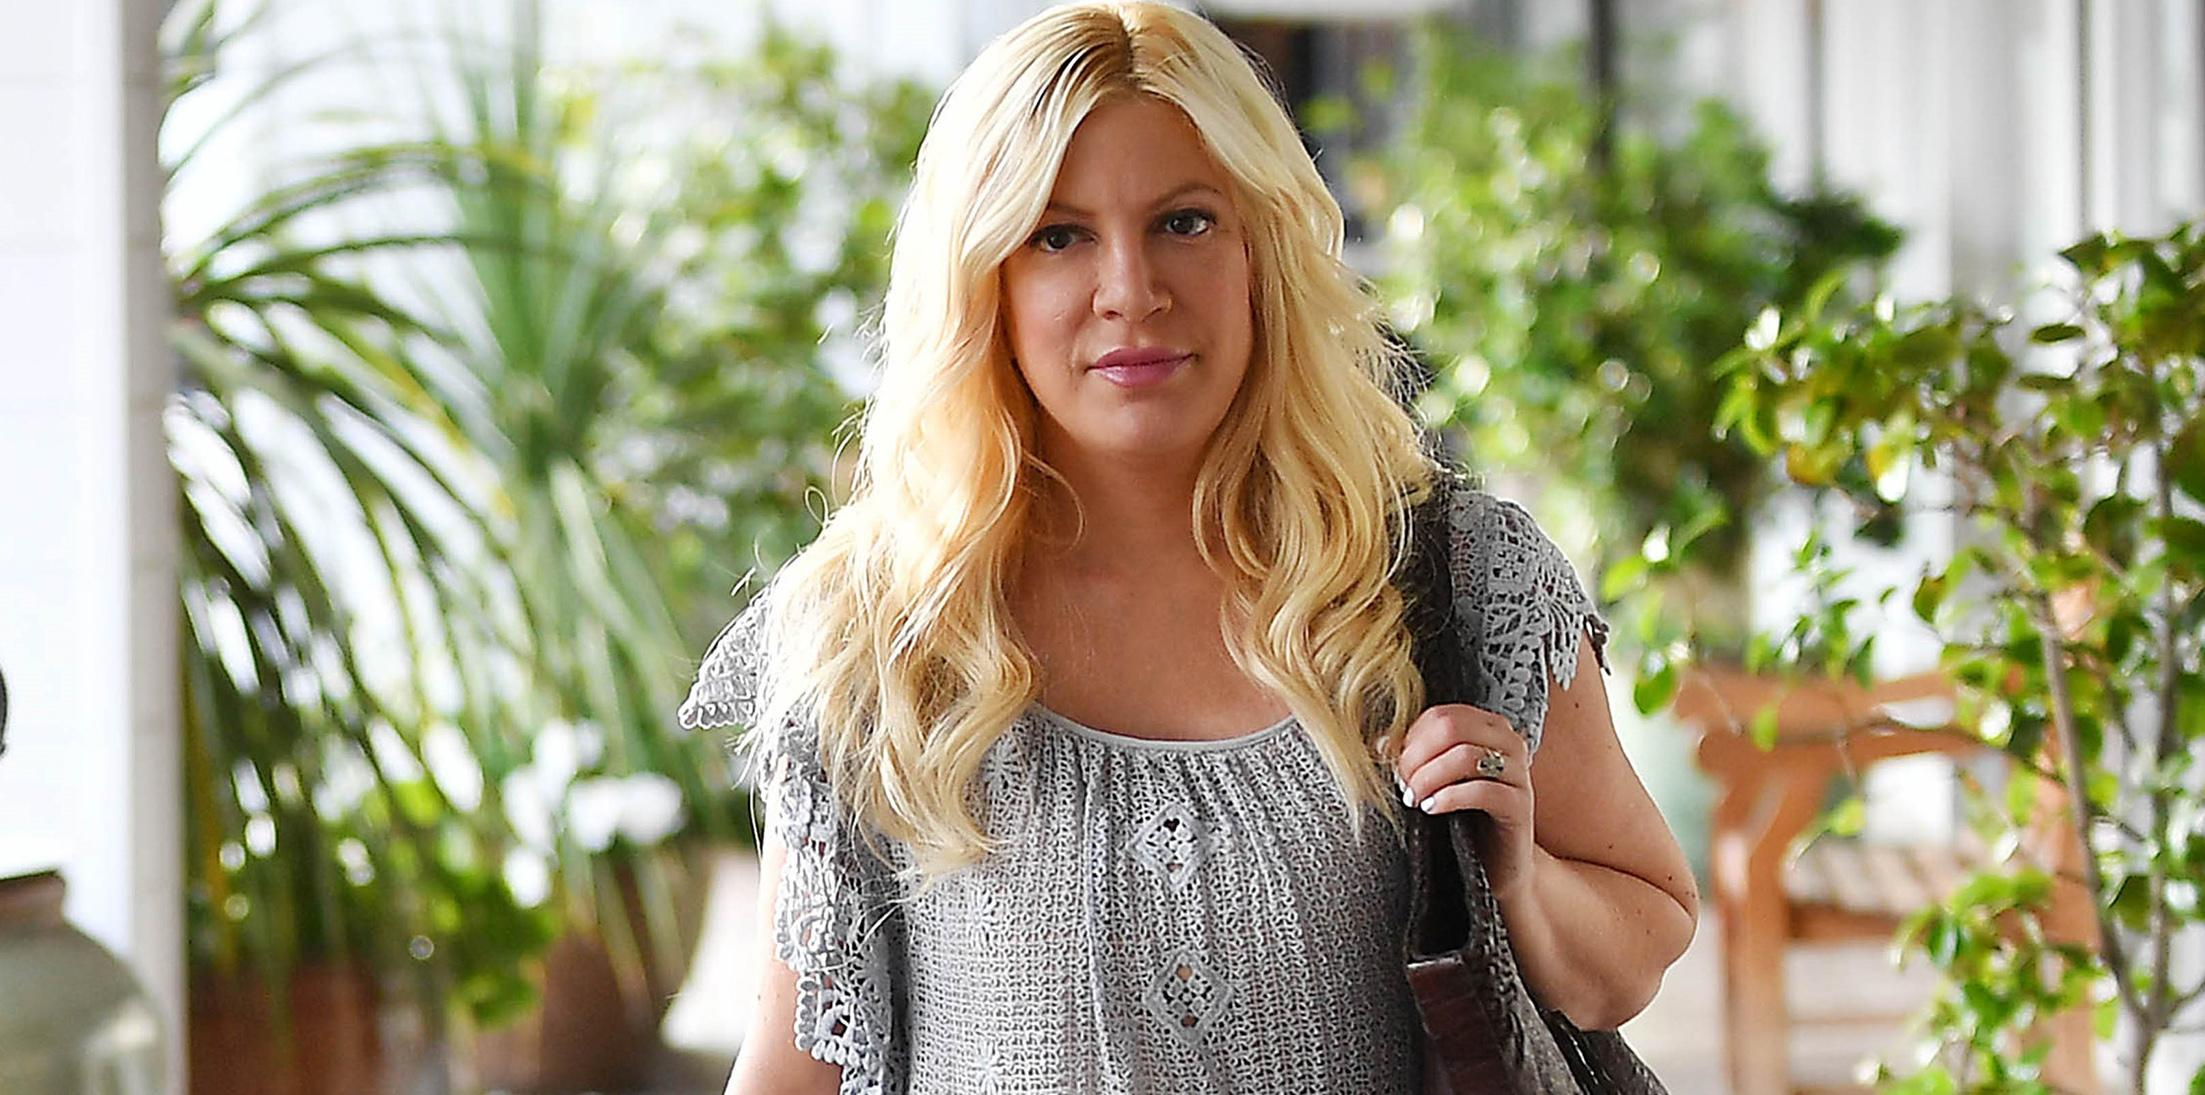 Tori spelling benihana lawsuit feature